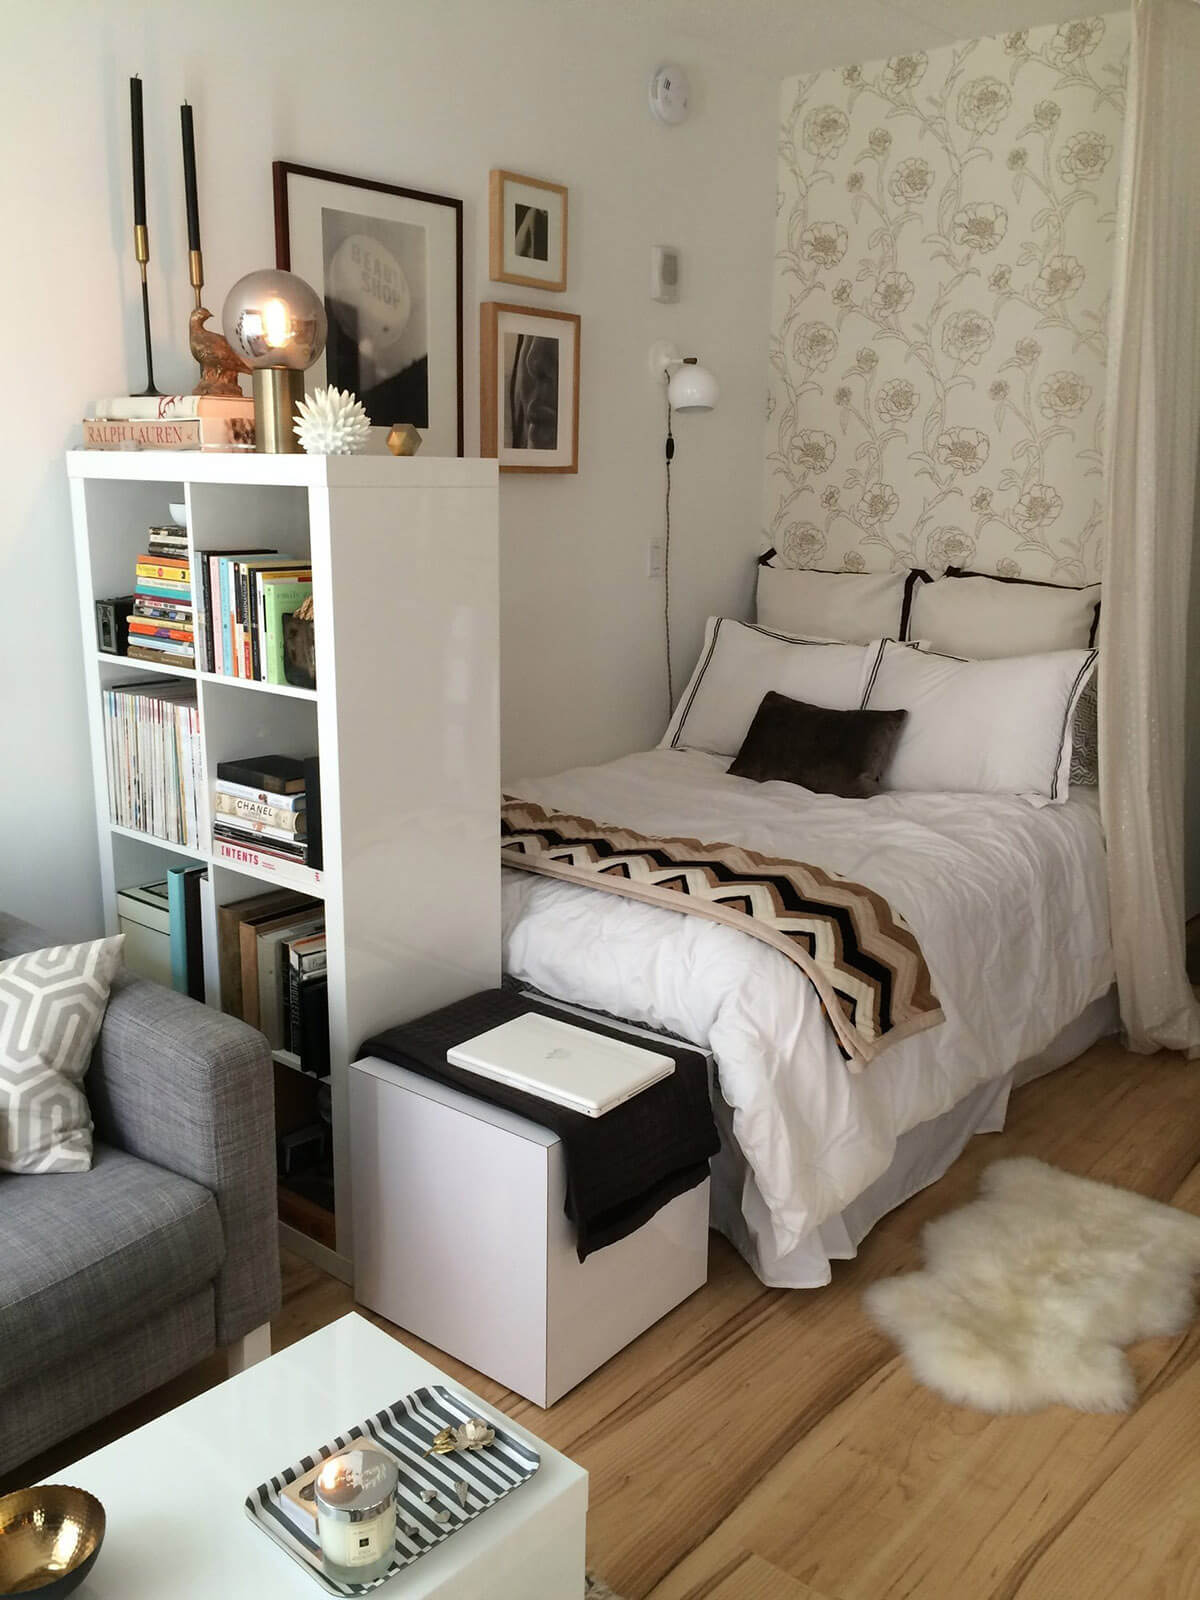 Wonderful Small Bedroom Ideas With A Tall Bookshelf